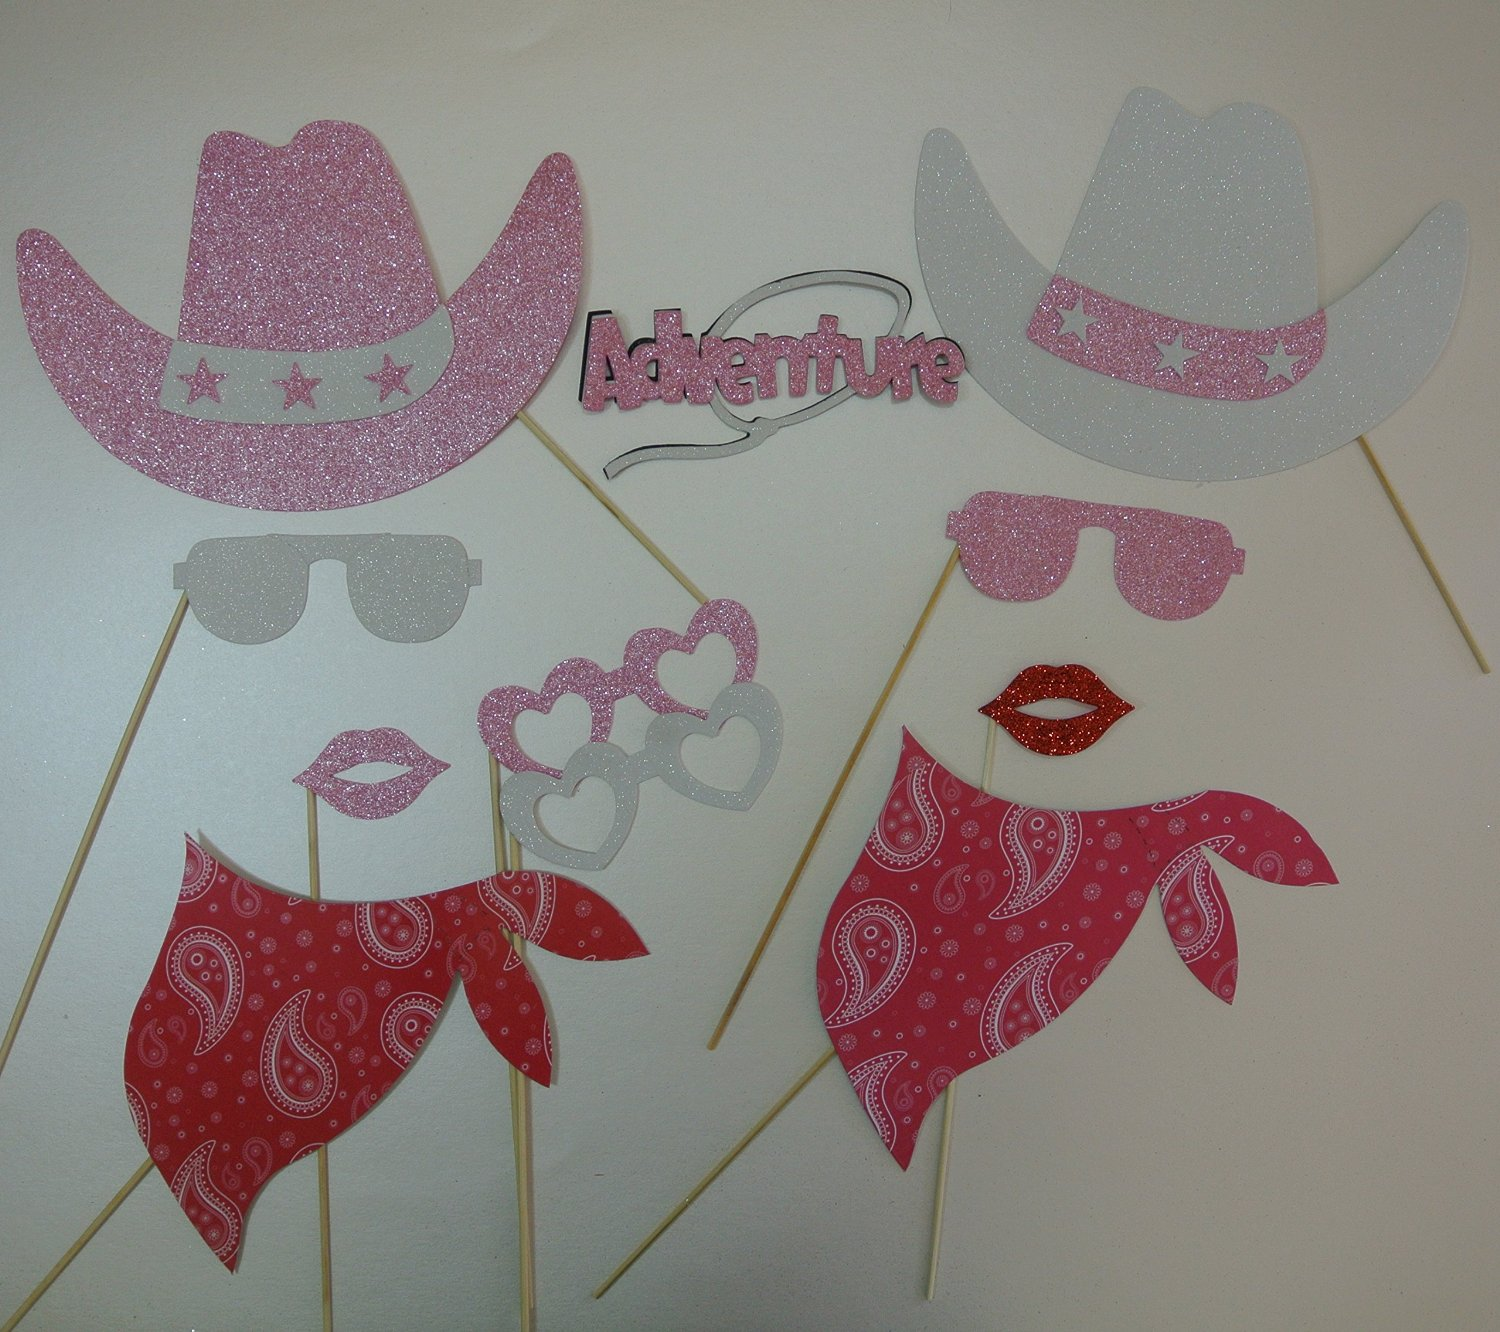 ec4b2cfd5b950 Get Quotations · 11 Pc Photo Booth Party Props Mustache on a Stick Western  Theme Party Cowboy Hat Pink